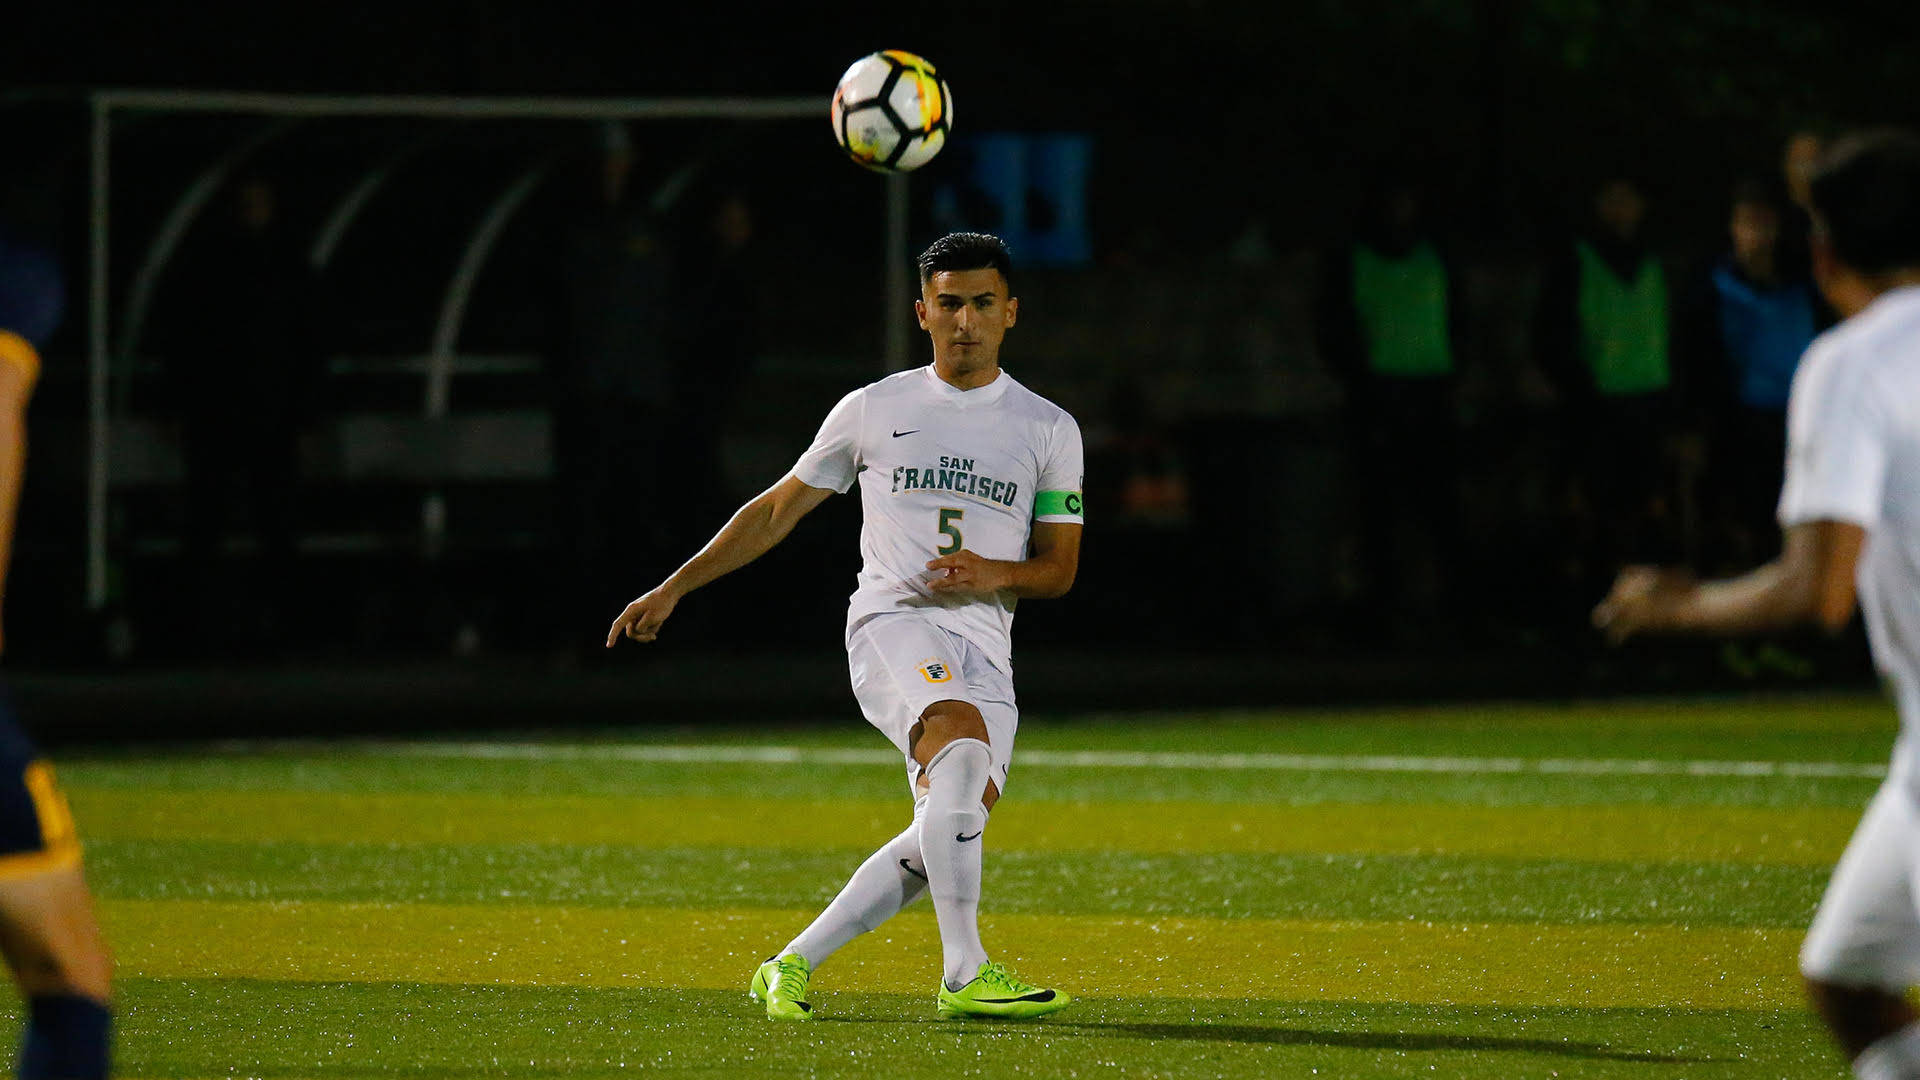 Former University of San Francisco soccer player Manny Padilla was released from his contract with New Mexico United, a professional soccer team, after allegations dating back to his time in college surfaced in an online petition. (Courtesy USF)